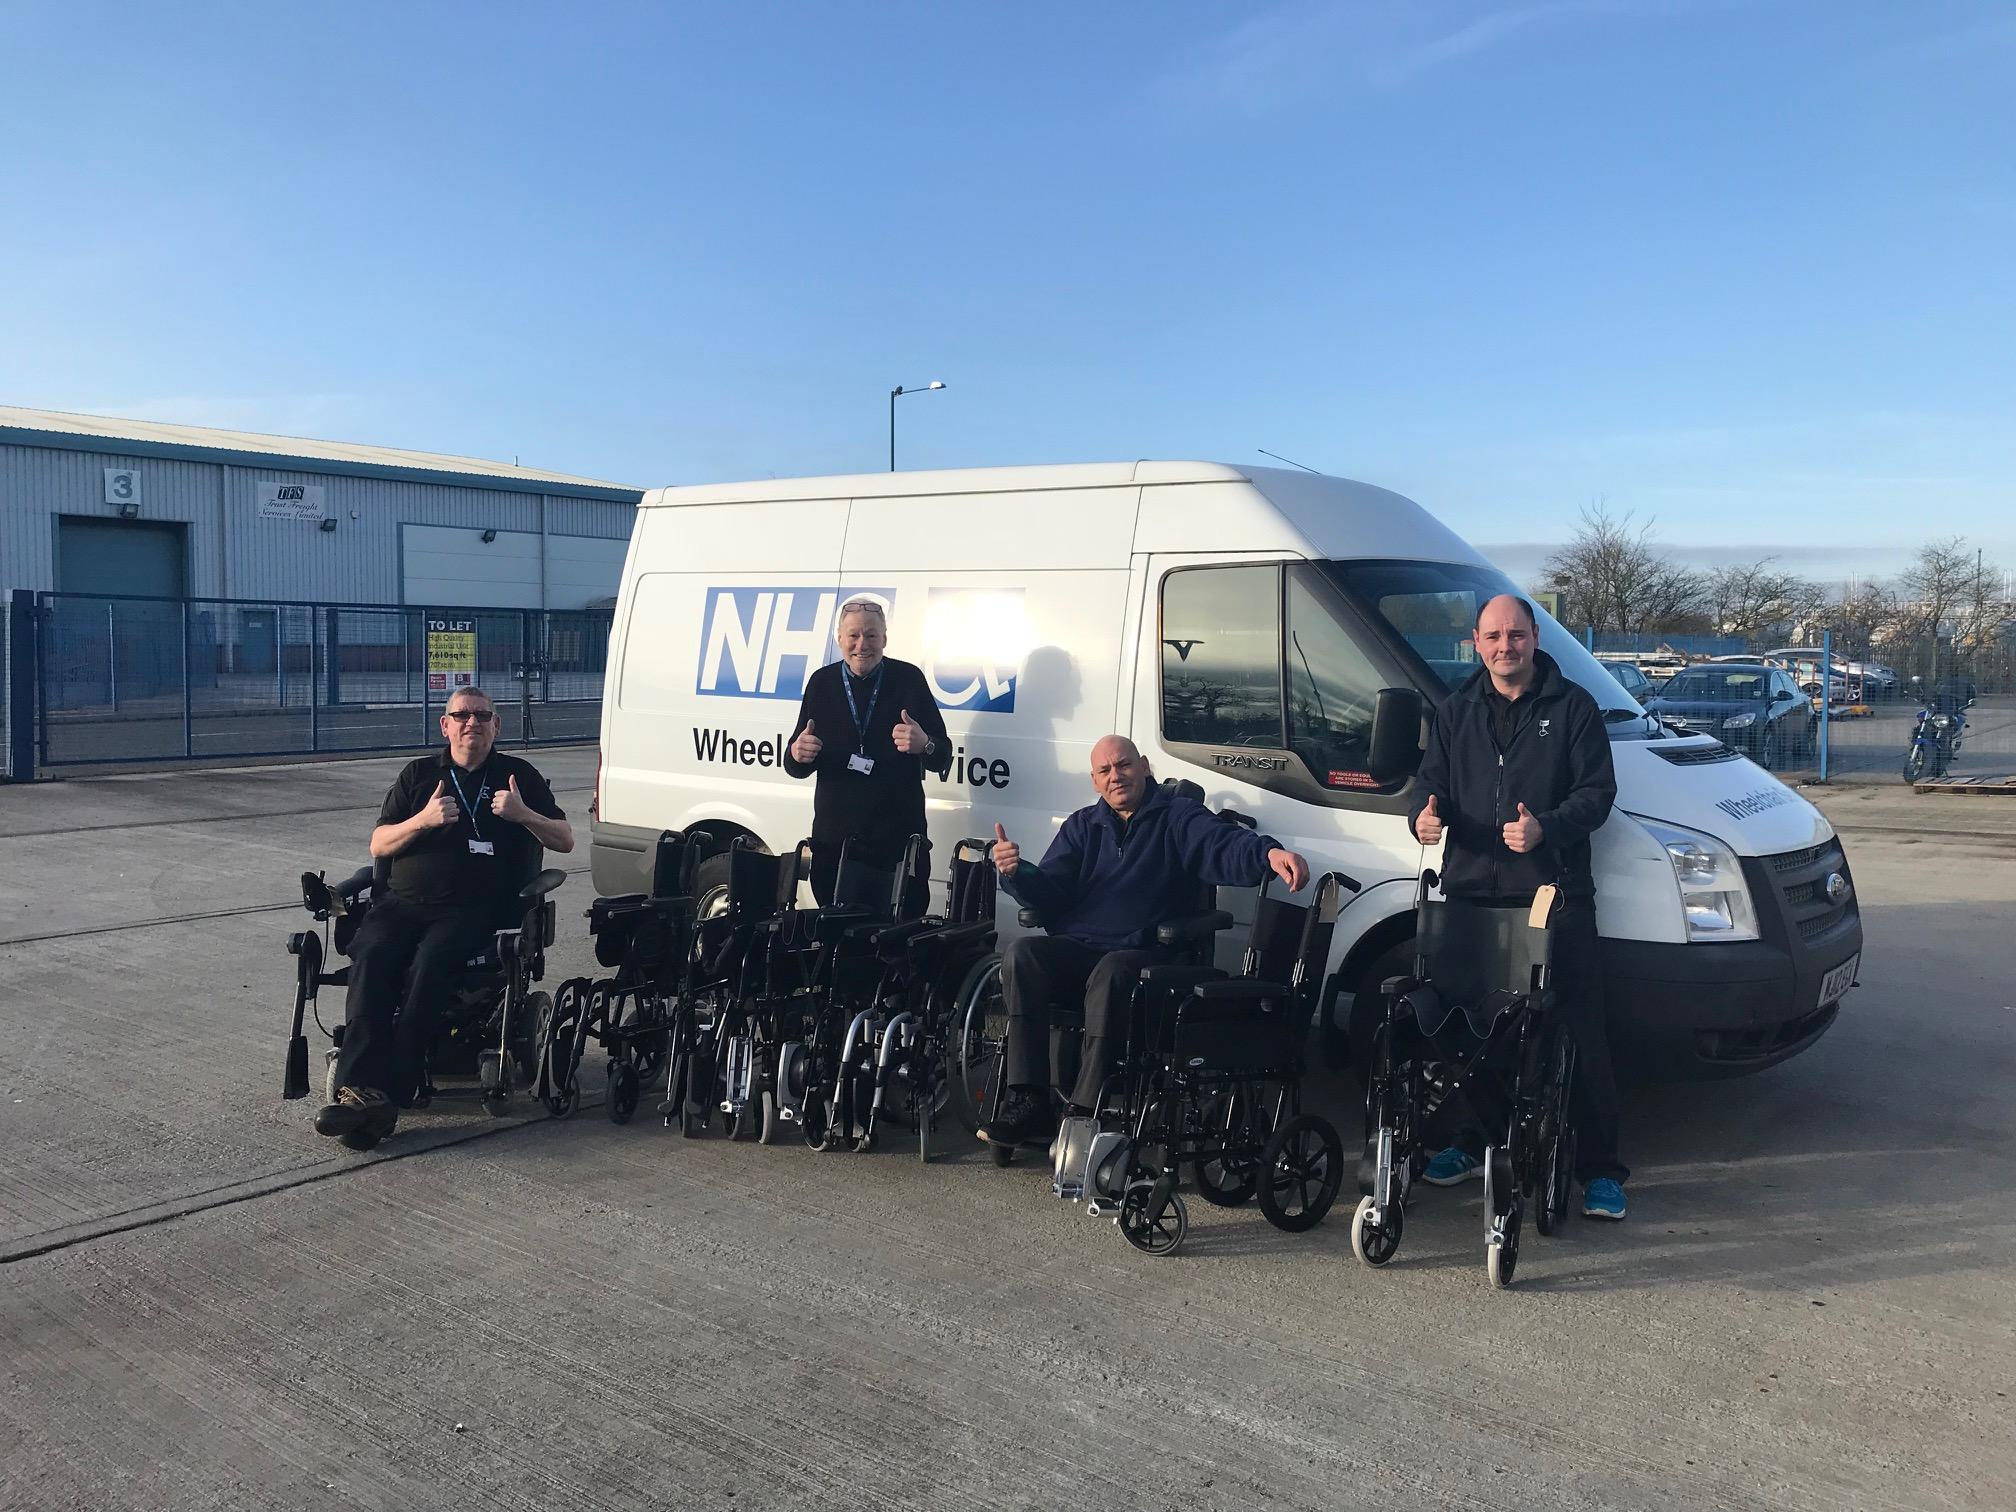 , Wheelchairs are rolling in twice as fast as last year!, Skem News - The Top Source for Skelmersdale News